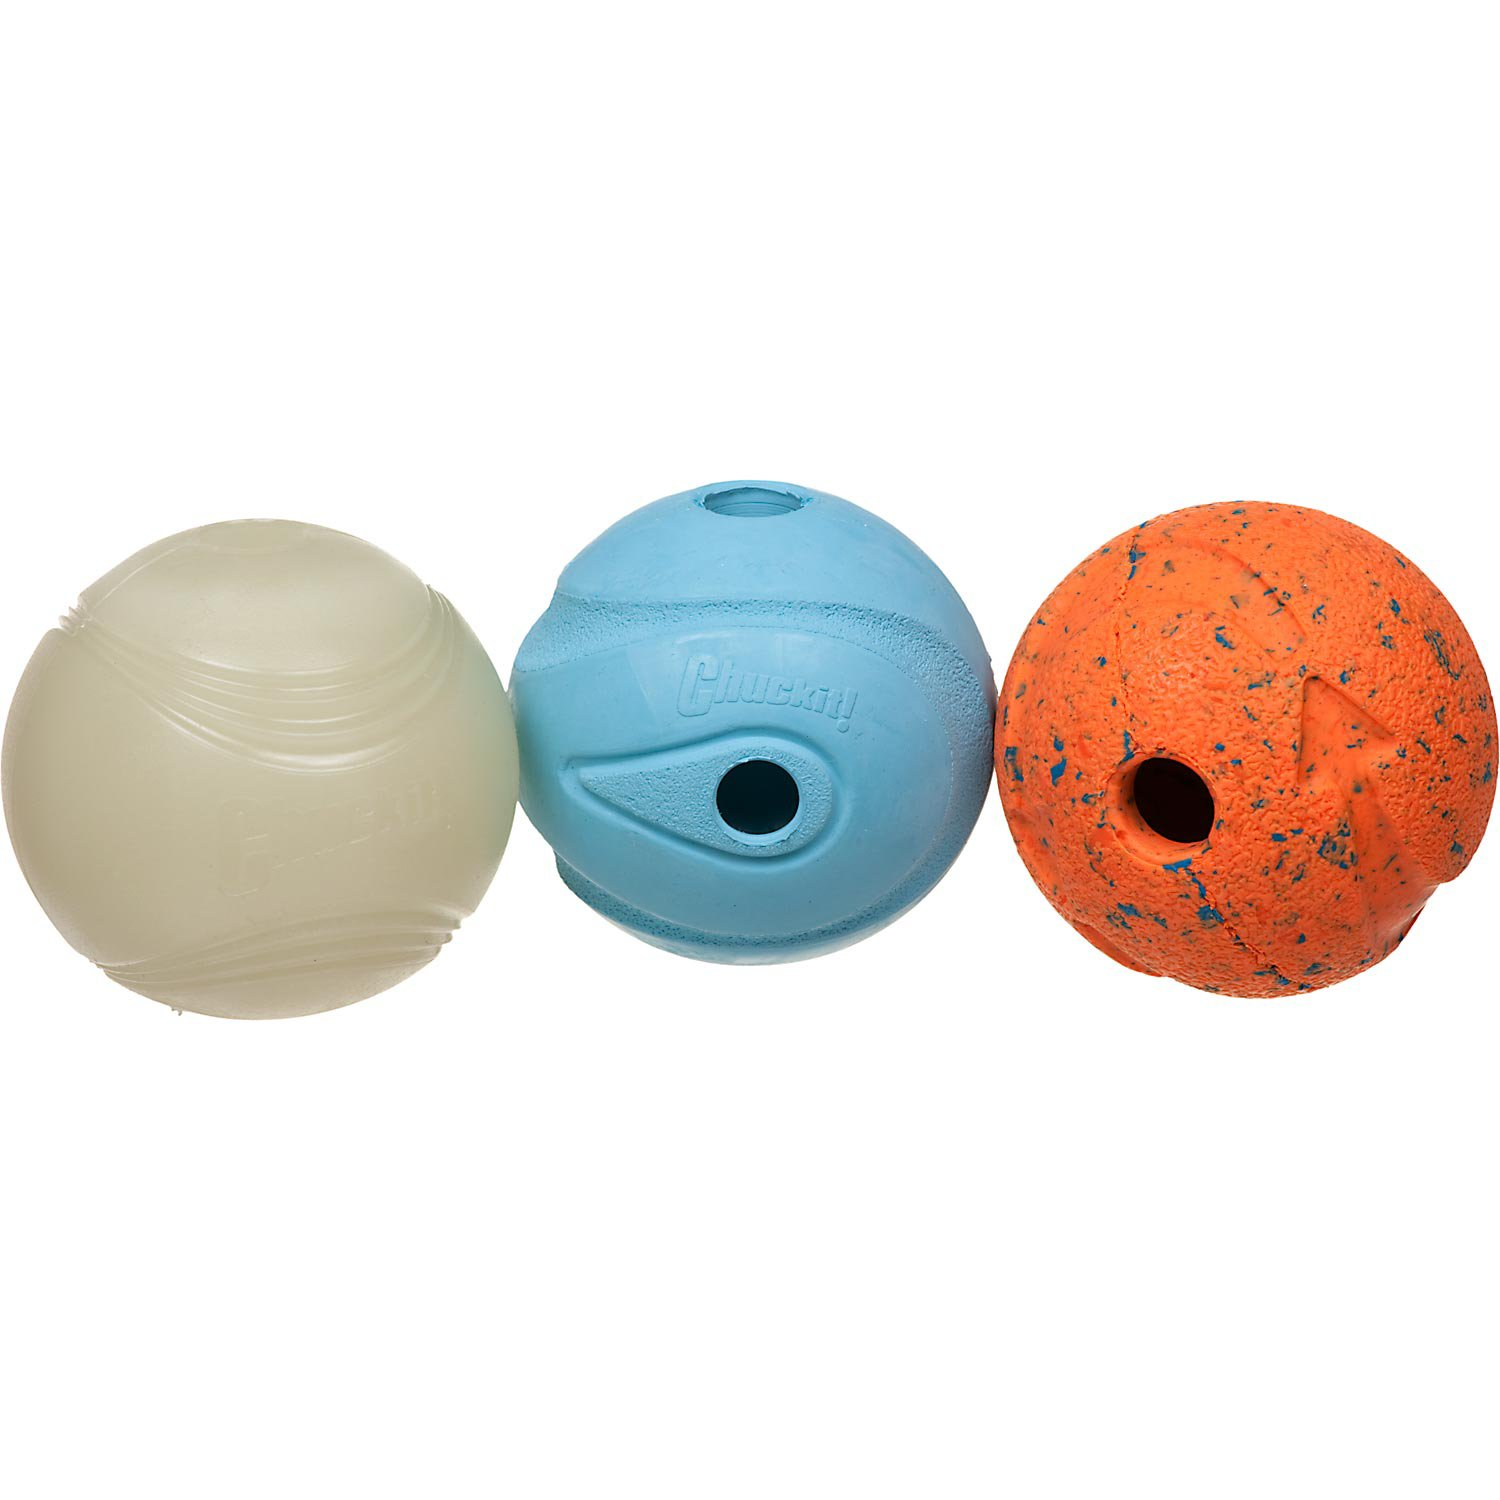 Doggy Toys Indestructible Dog Toys Pet Toys for Puppies and Big